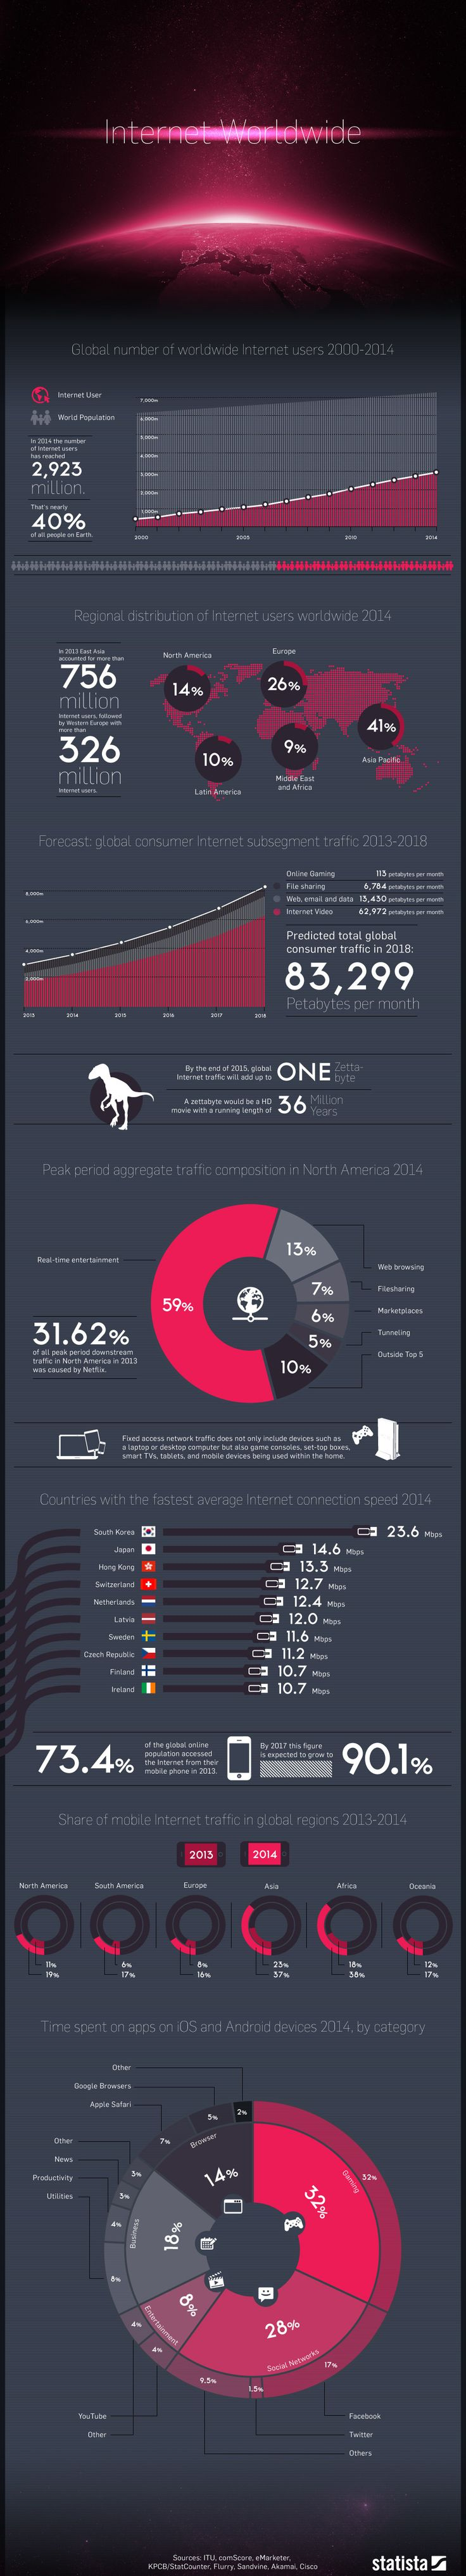 Giant Chart: Global Internet Usage By The Numbers - #infographic #internet